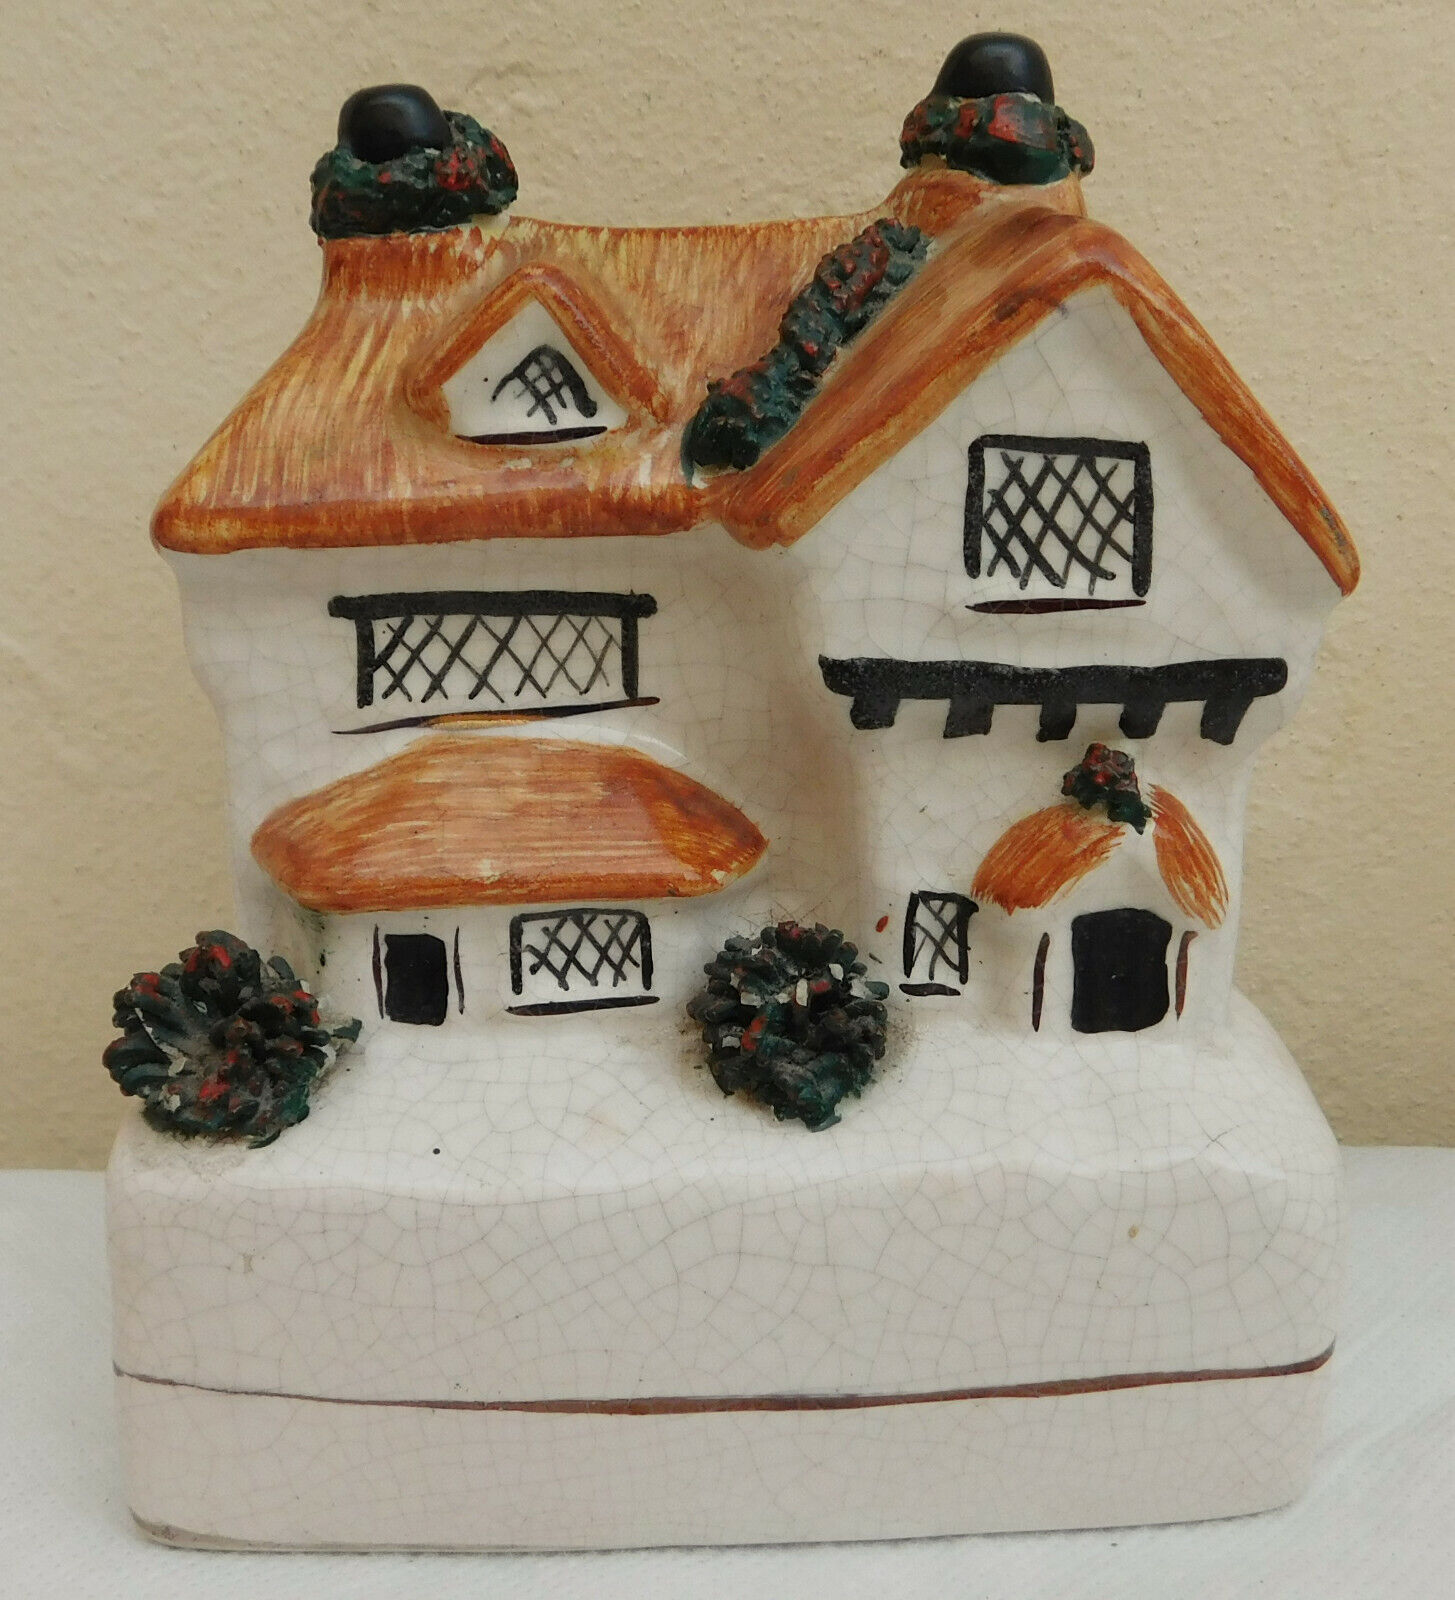 Ceramic cottage money box Staffordshire style pottery thatched house